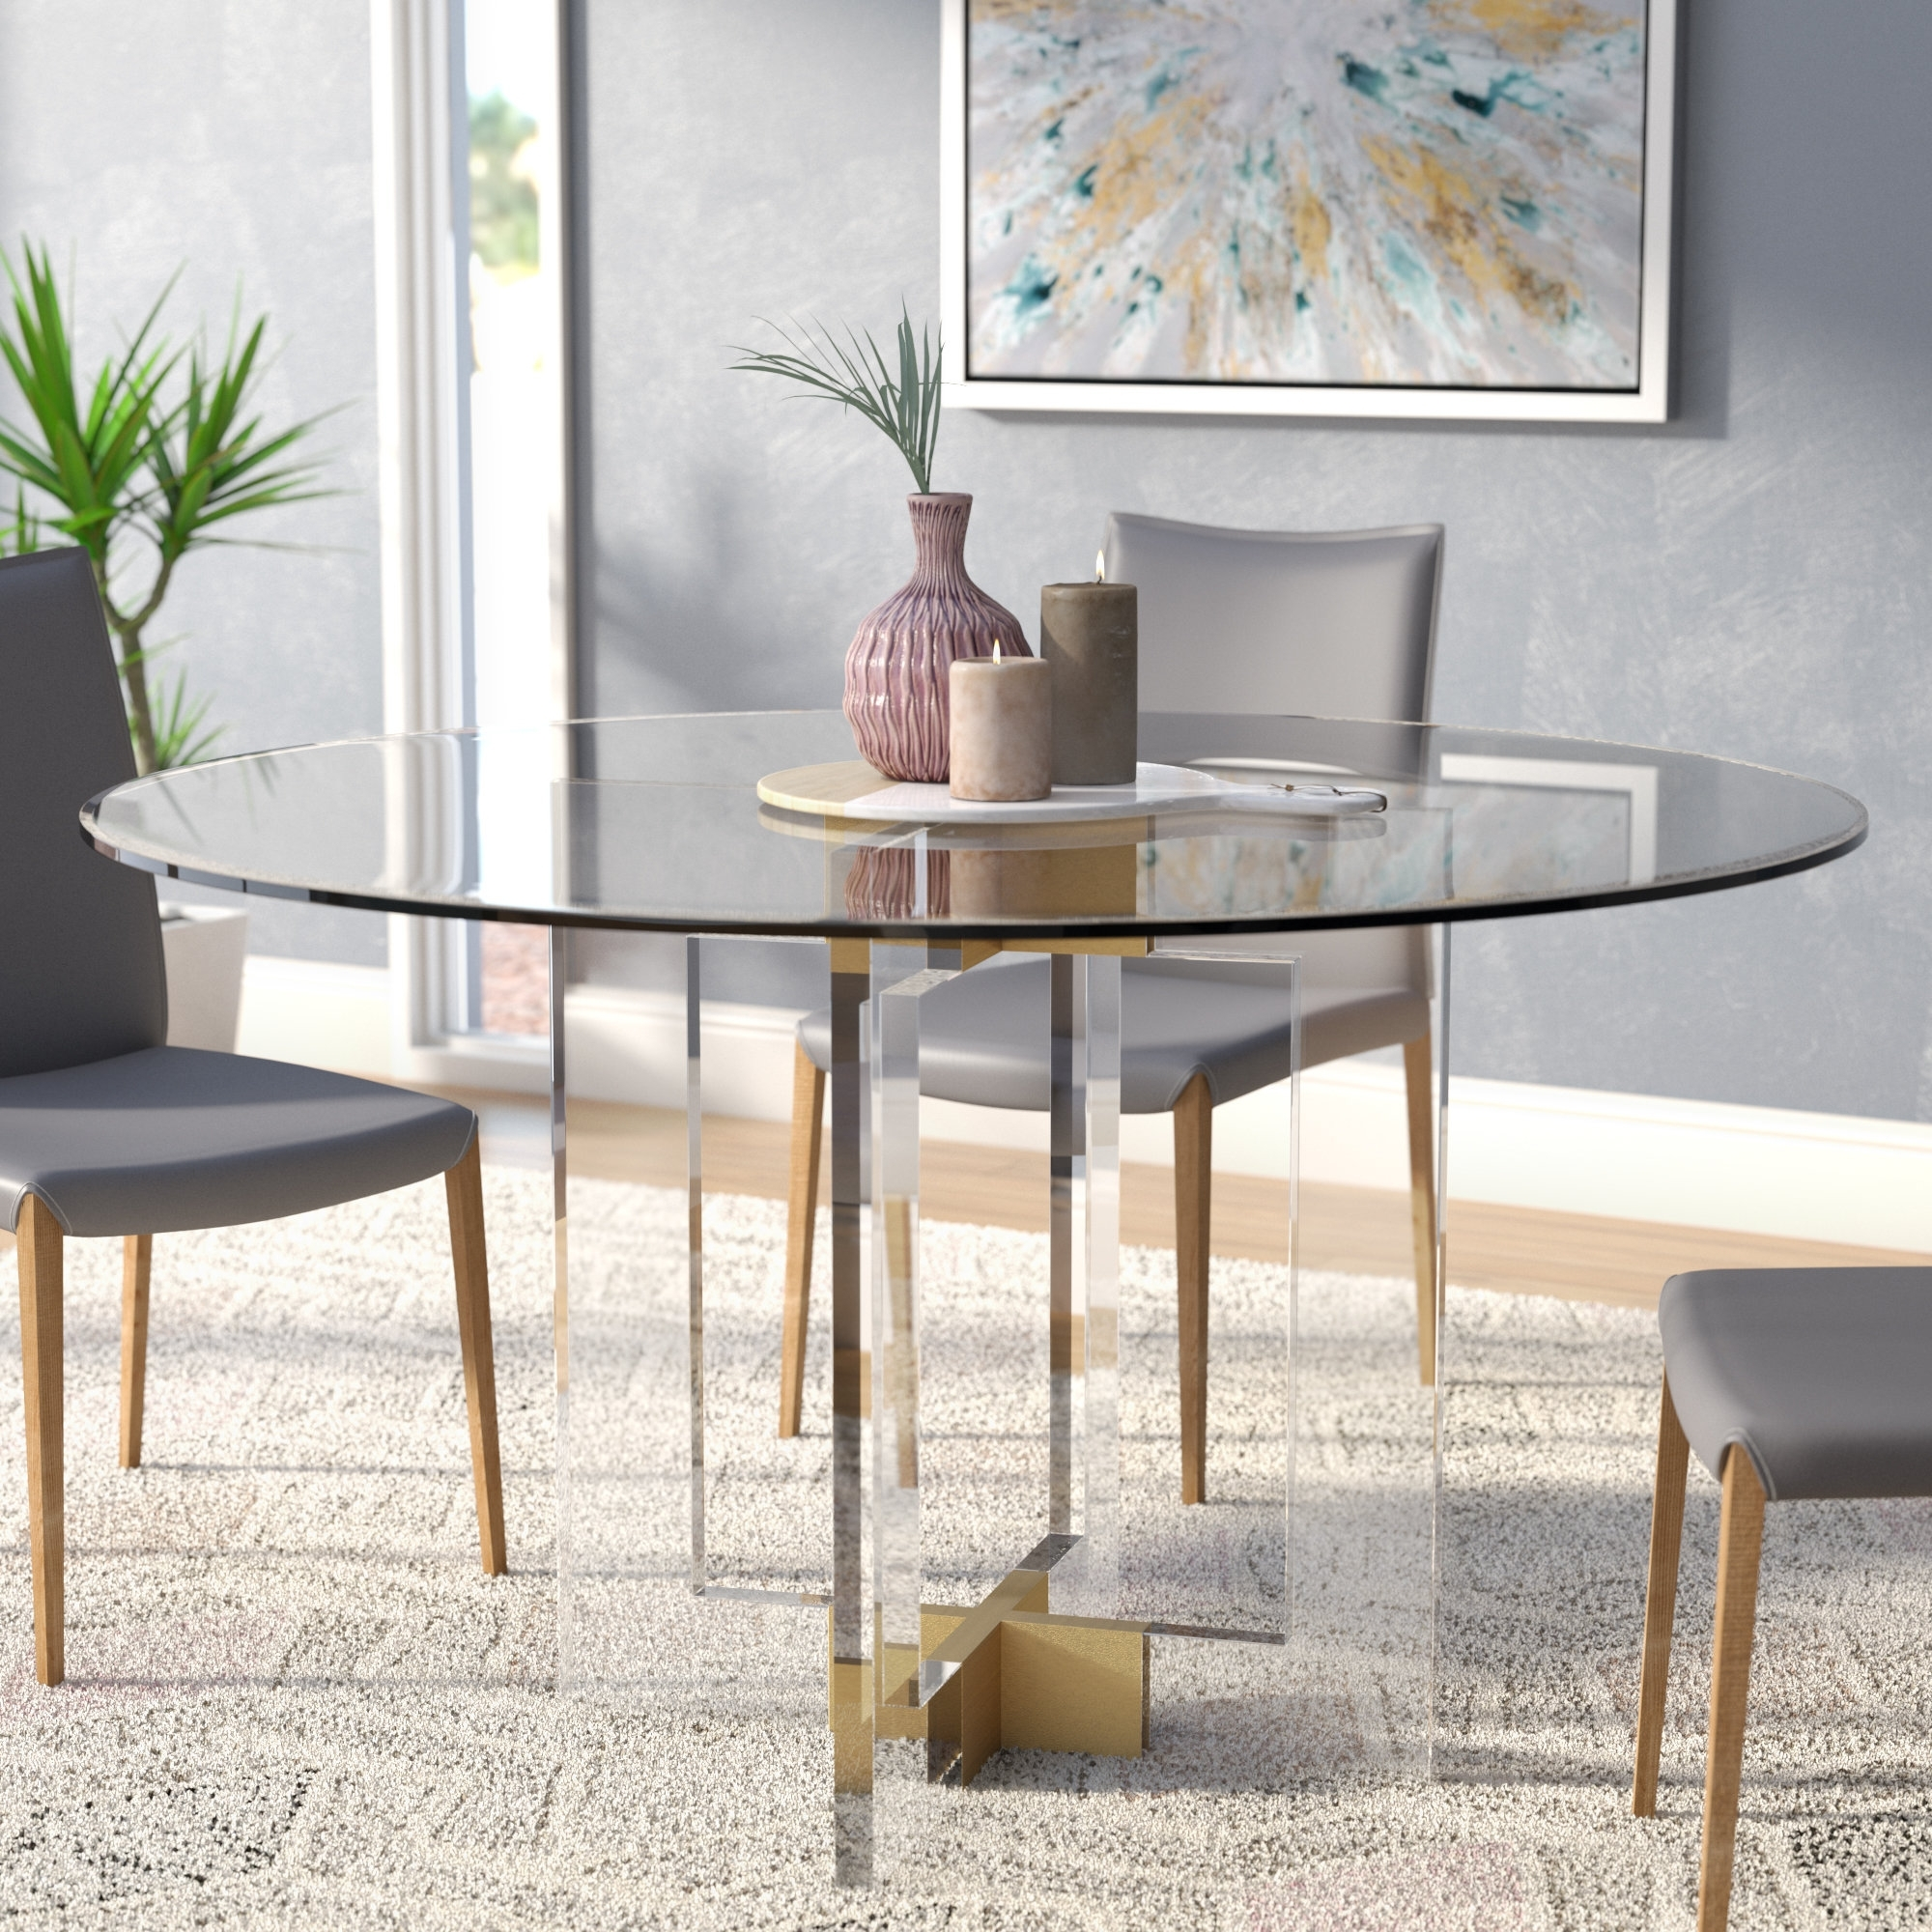 Well Liked Glasses Dining Tables Intended For Willa Arlo Interiors Gosta Round Glass Dining Table (View 24 of 25)